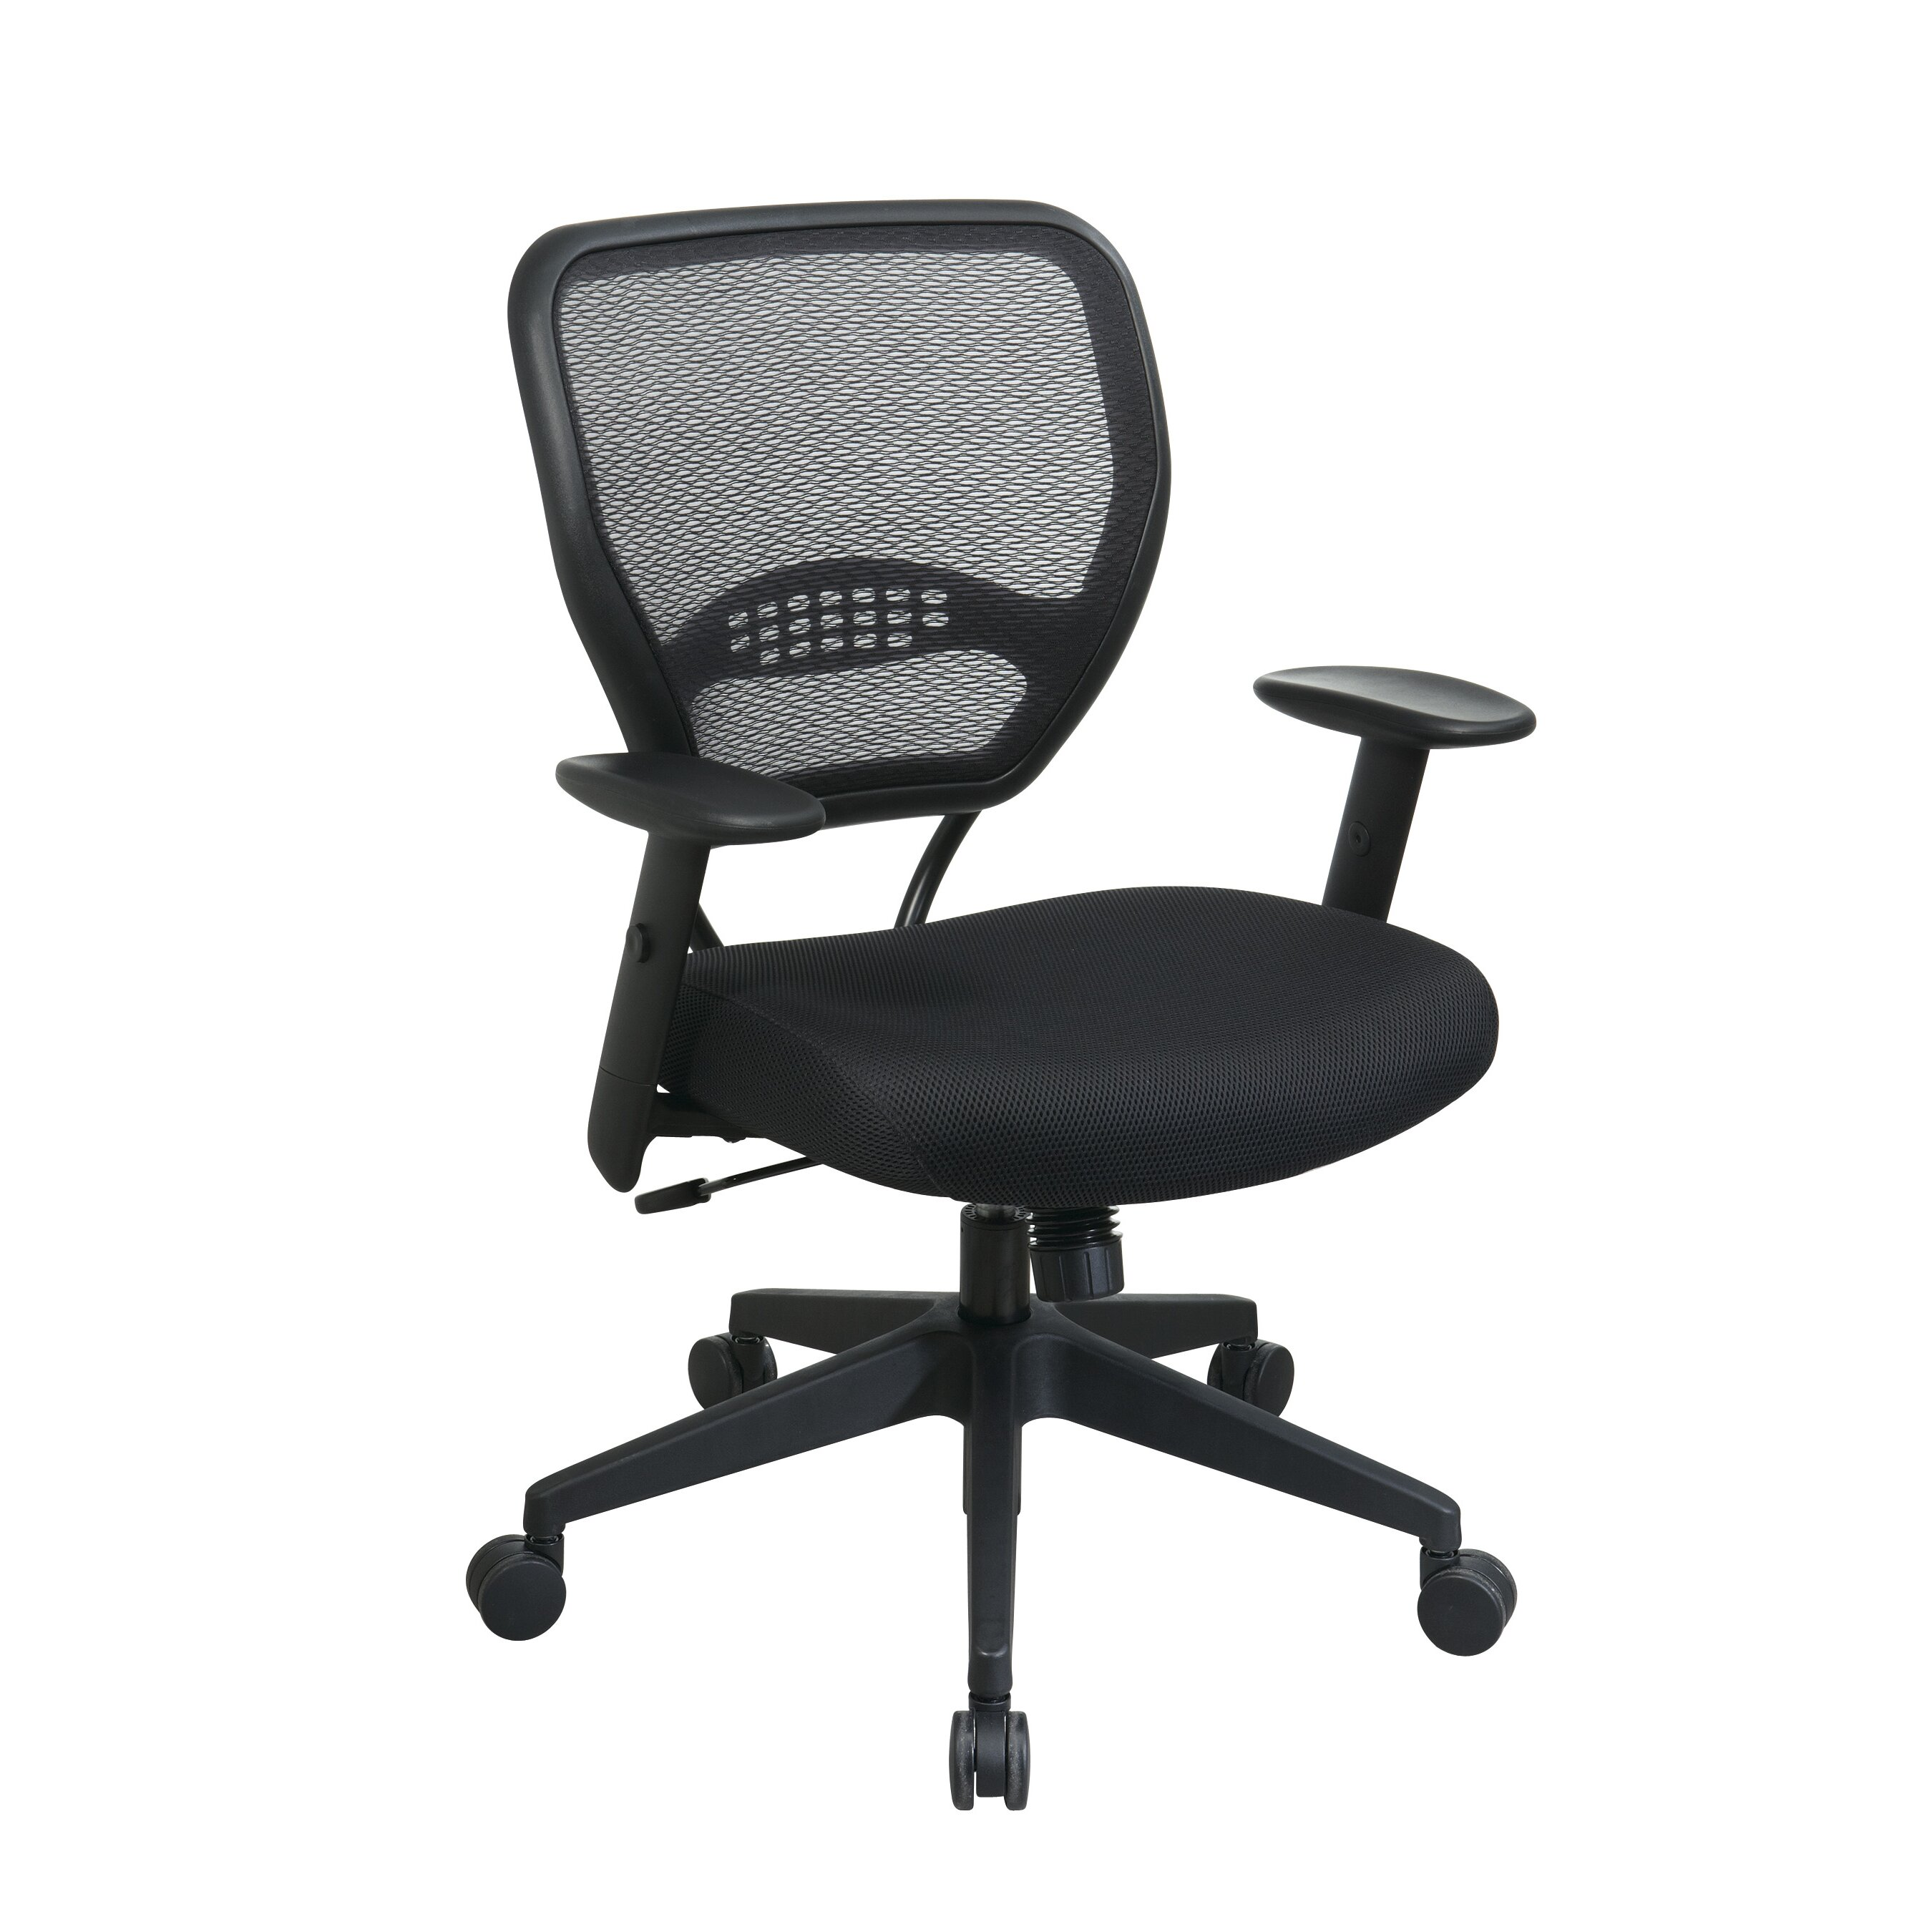 office star space mid back mesh desk chair reviews wayfair